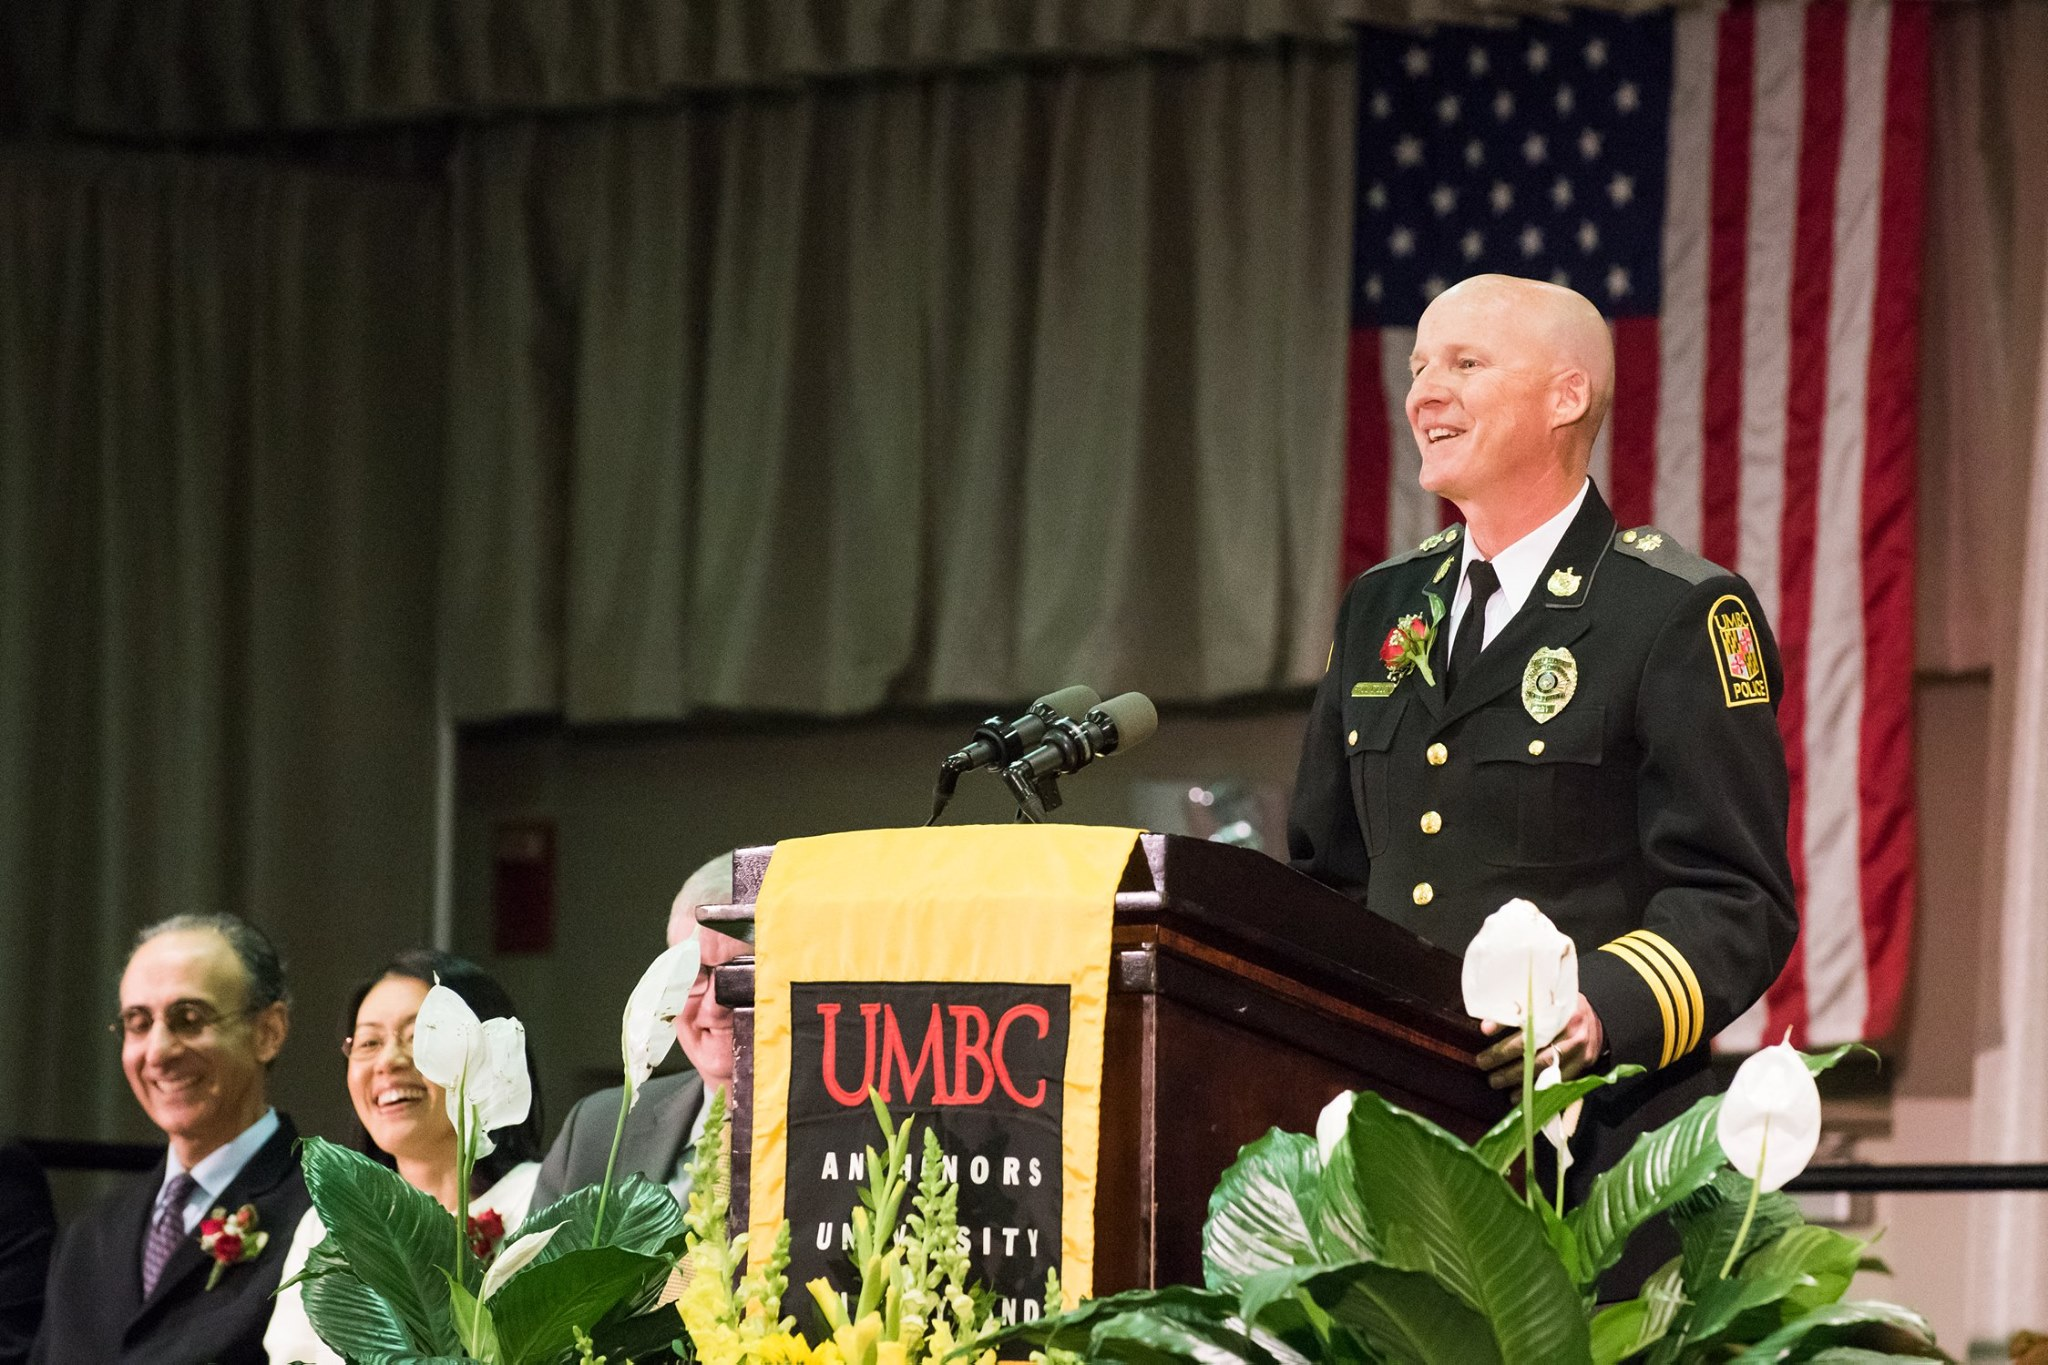 Paul Dillon Received University System of Maryland Board of Regents' Staff Award for Exceptional Contributions to the Mission of UMBC